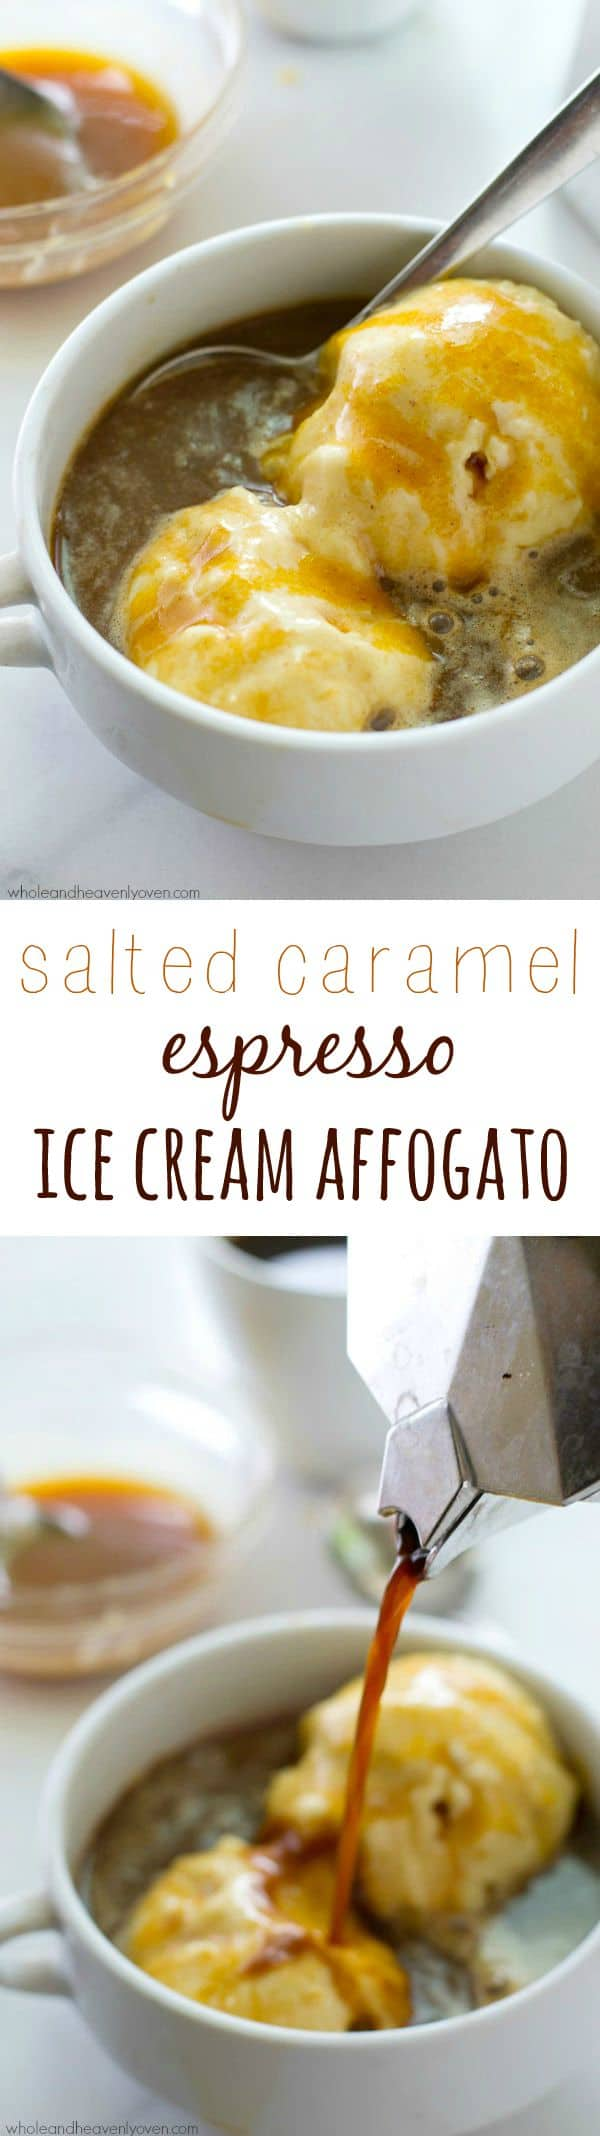 Lots of homemade salted caramel sauce, strong-brewed espresso and vanilla ice cream come together in this classic Italian dessert. @WholeHeavenly